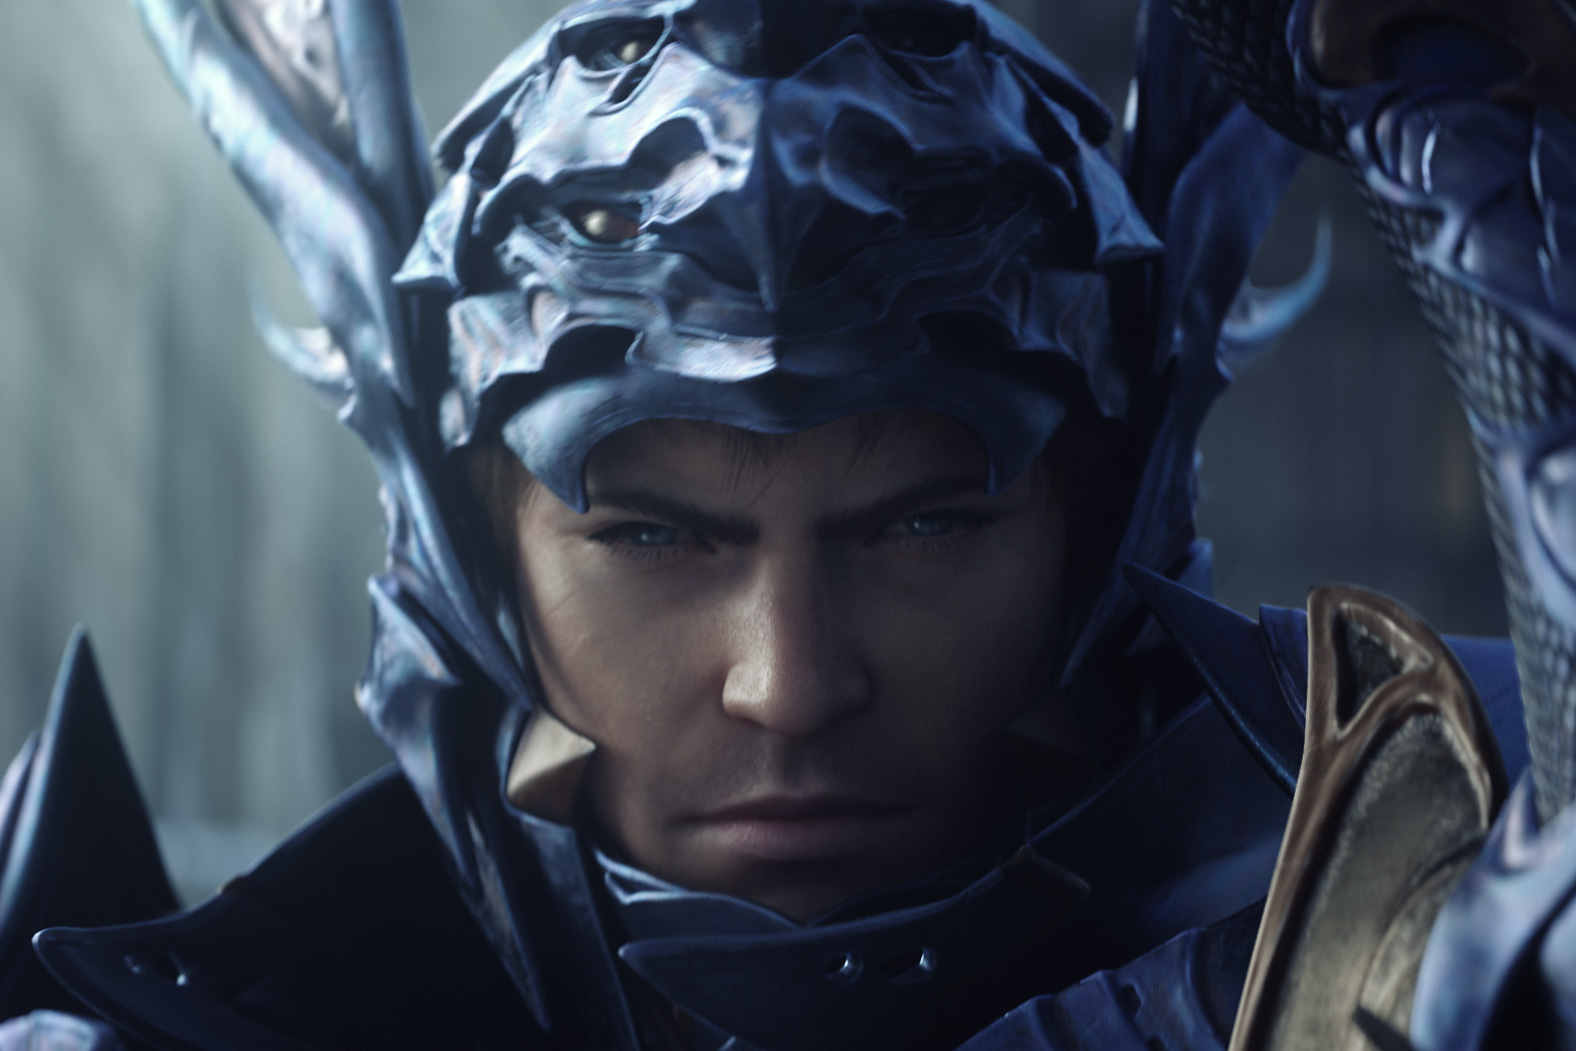 A dragoon suits up in Final Fantasy XIV: Heavensward